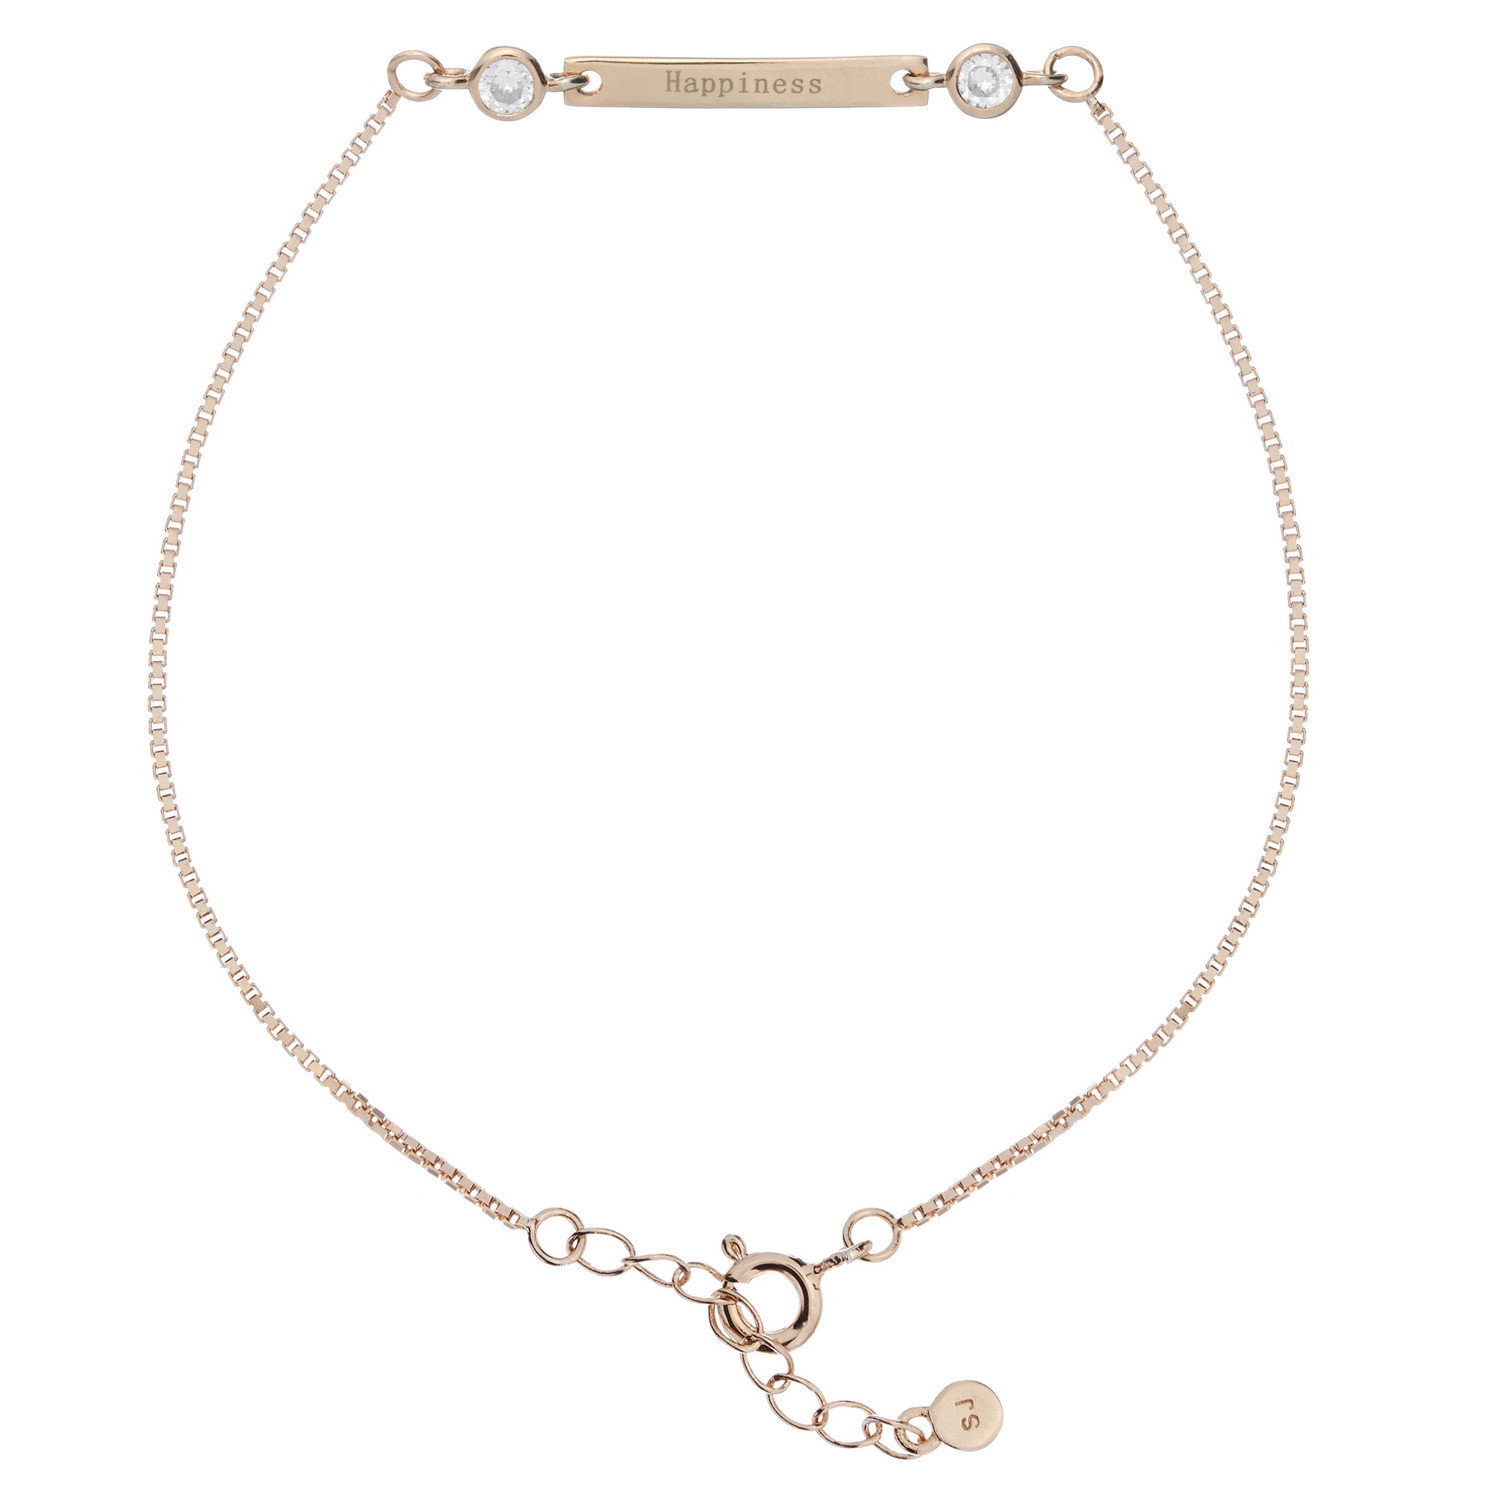 Synergy Sister Friendship Bracelet in Rose Gold with Happiness message